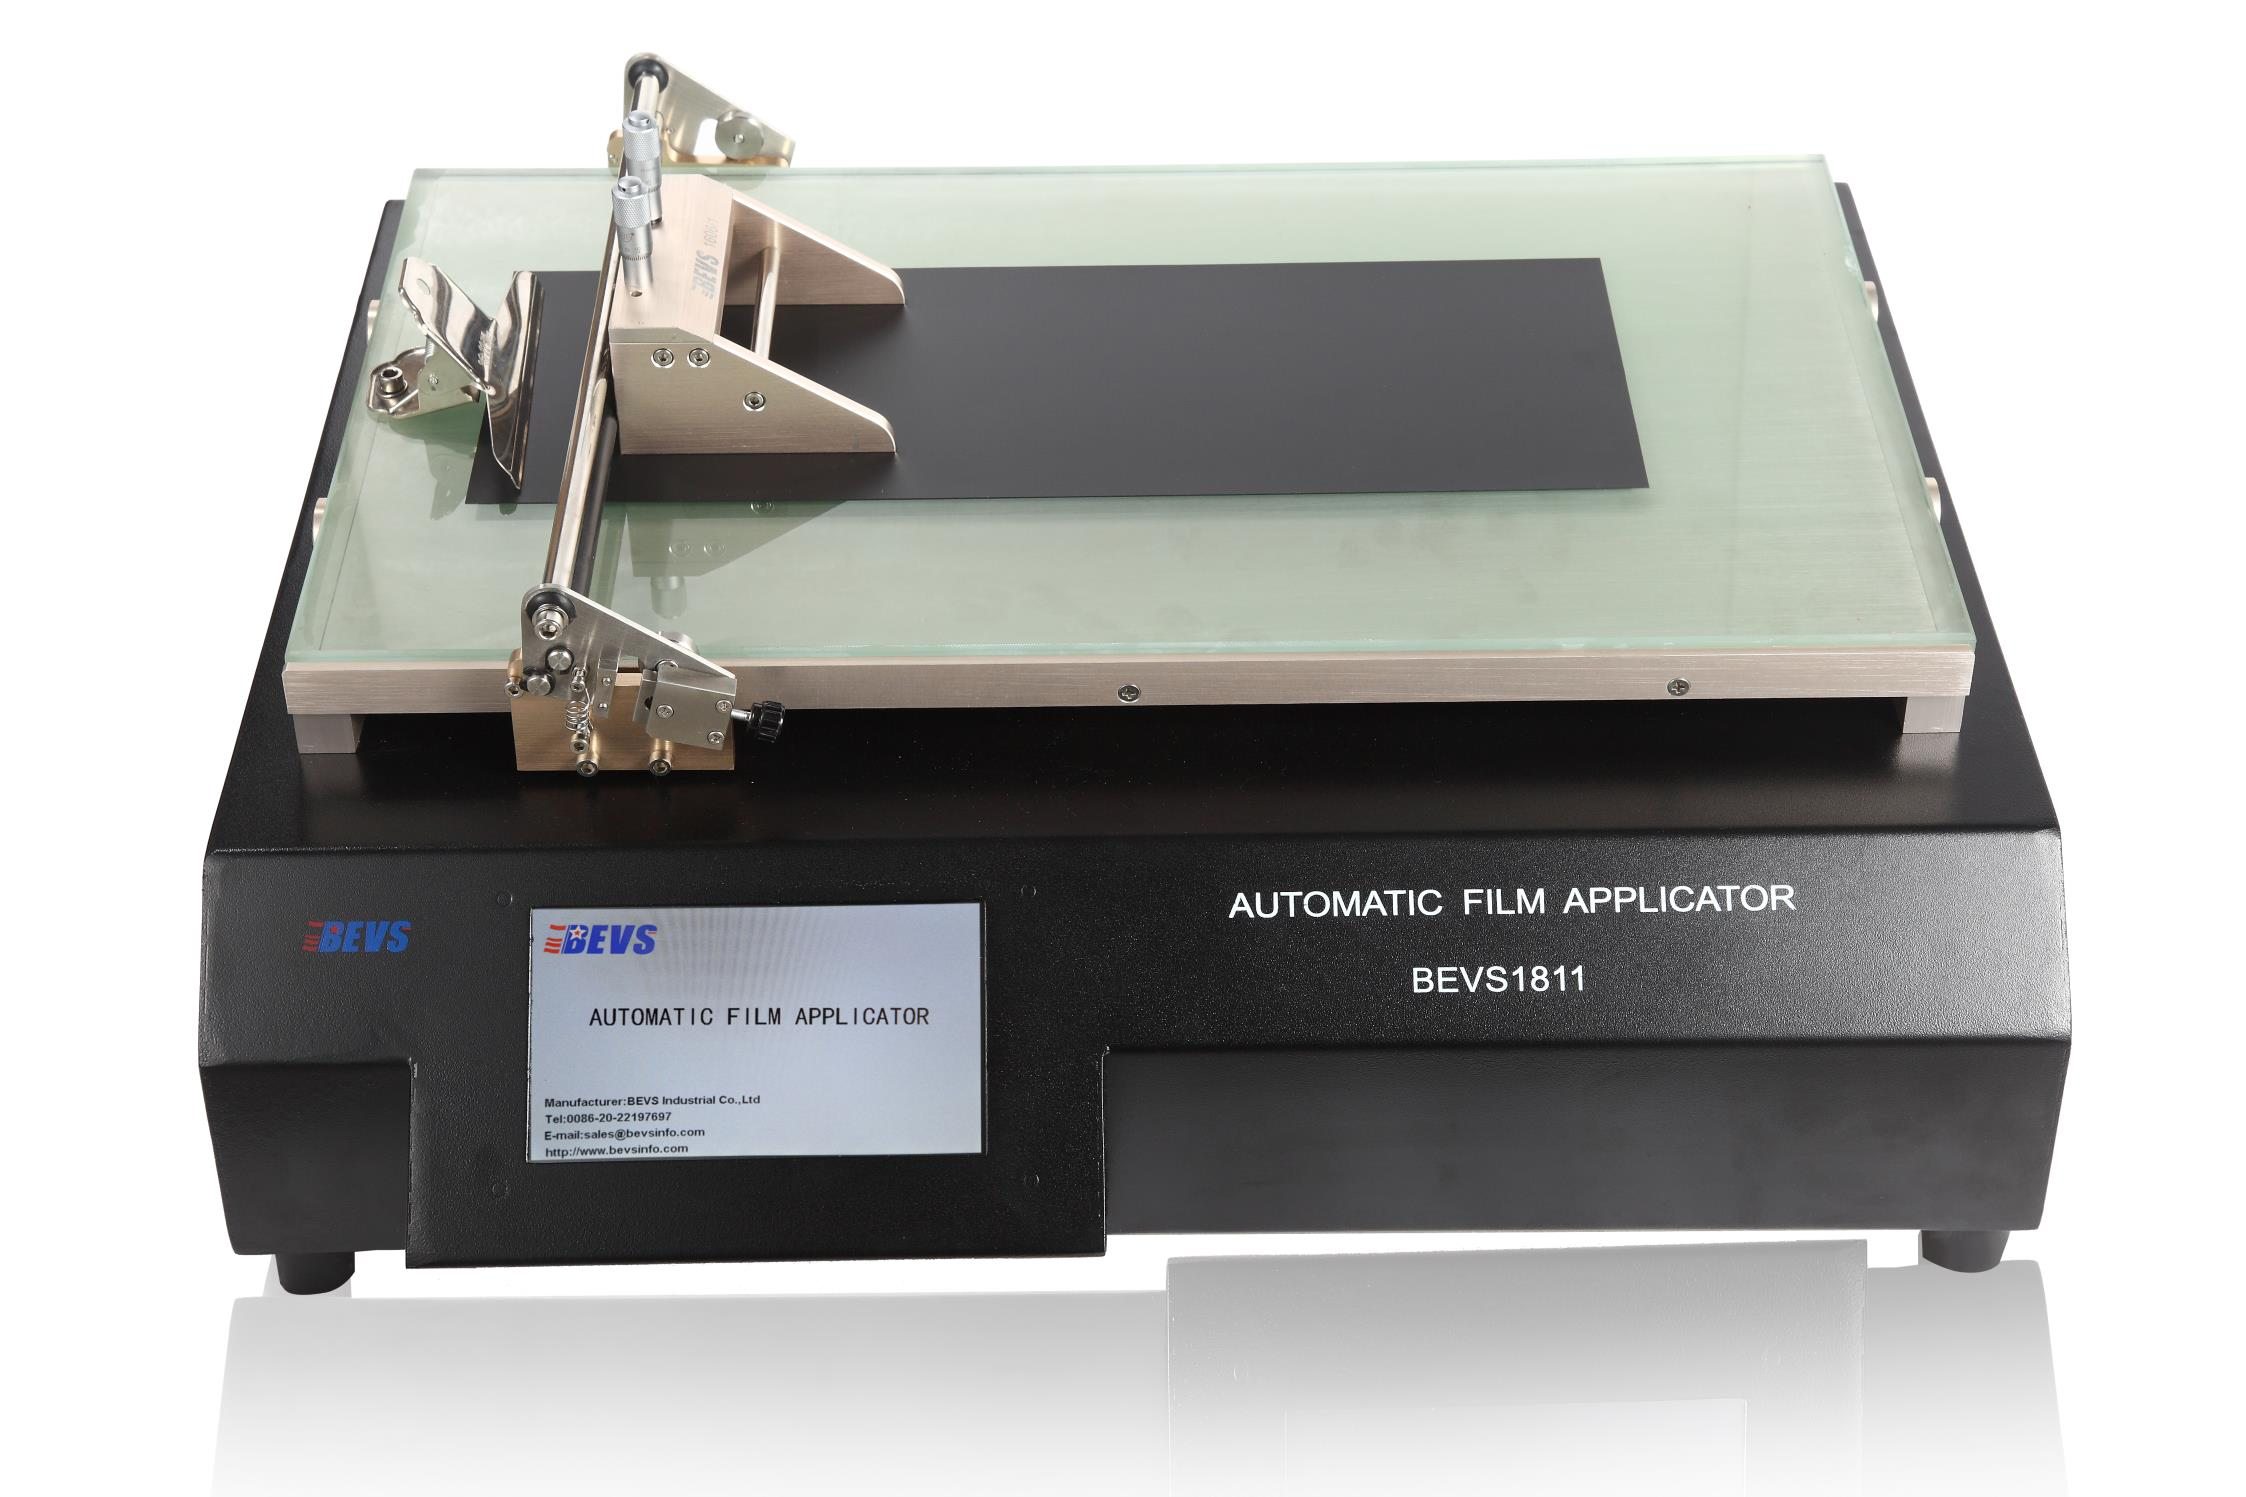 Auotmatic Film Applicator